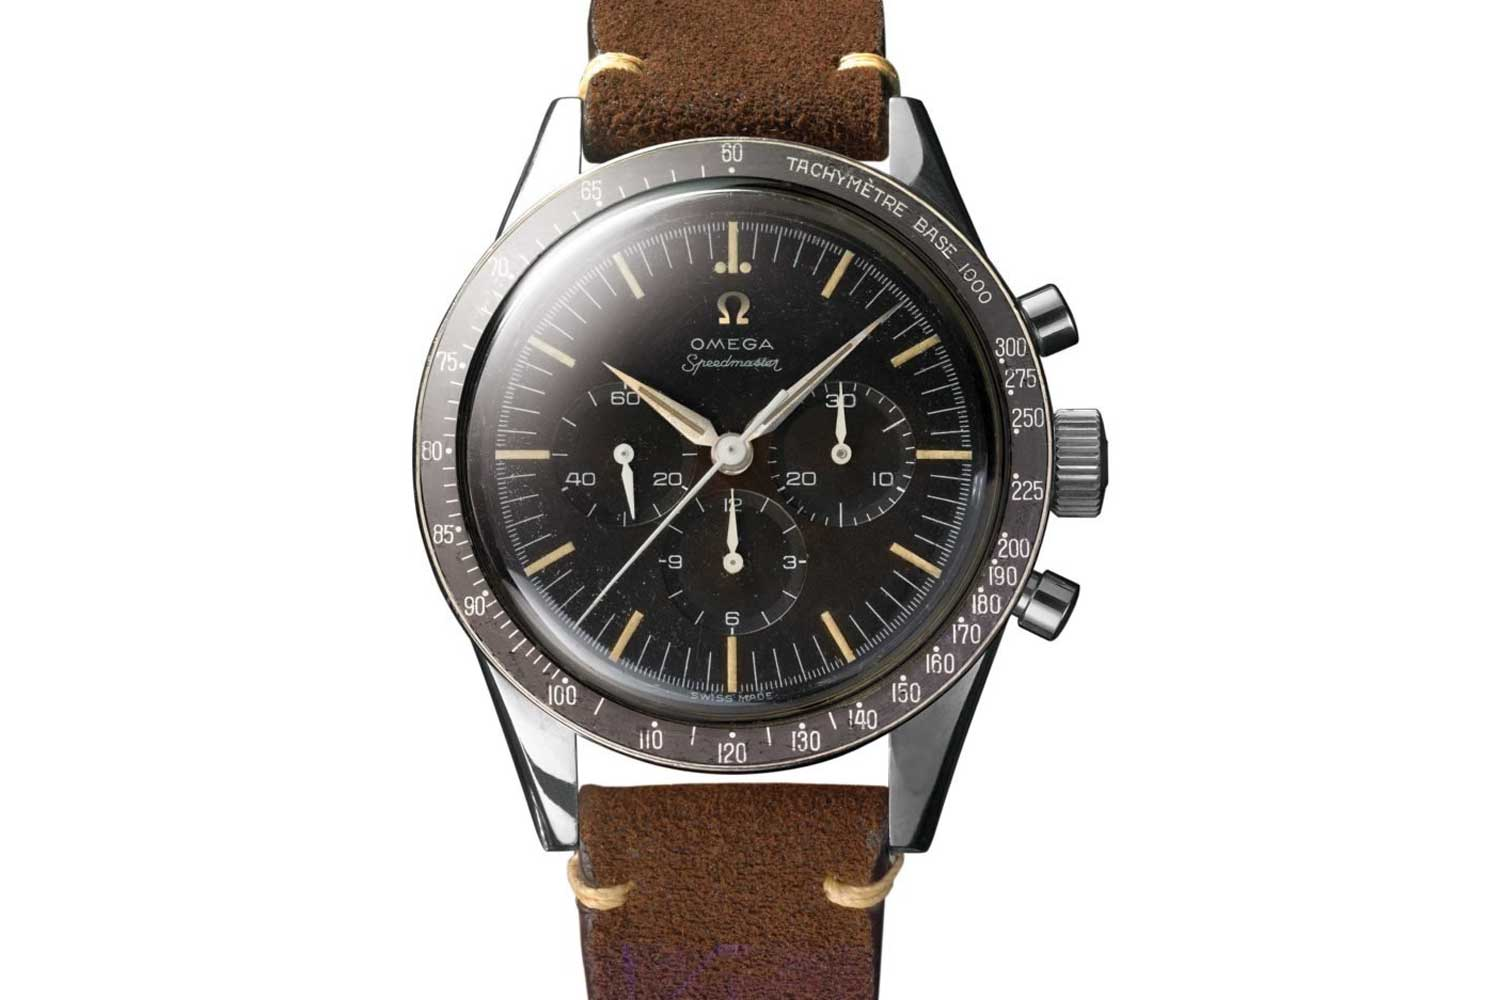 The CK 2998 is the first Omega Speedmaster to go to space, worn by astronaut Walter Schirra (it was his personal watch) when he orbited the Earth six times in the Sigma 7 spacecraft on October 3, 1962.